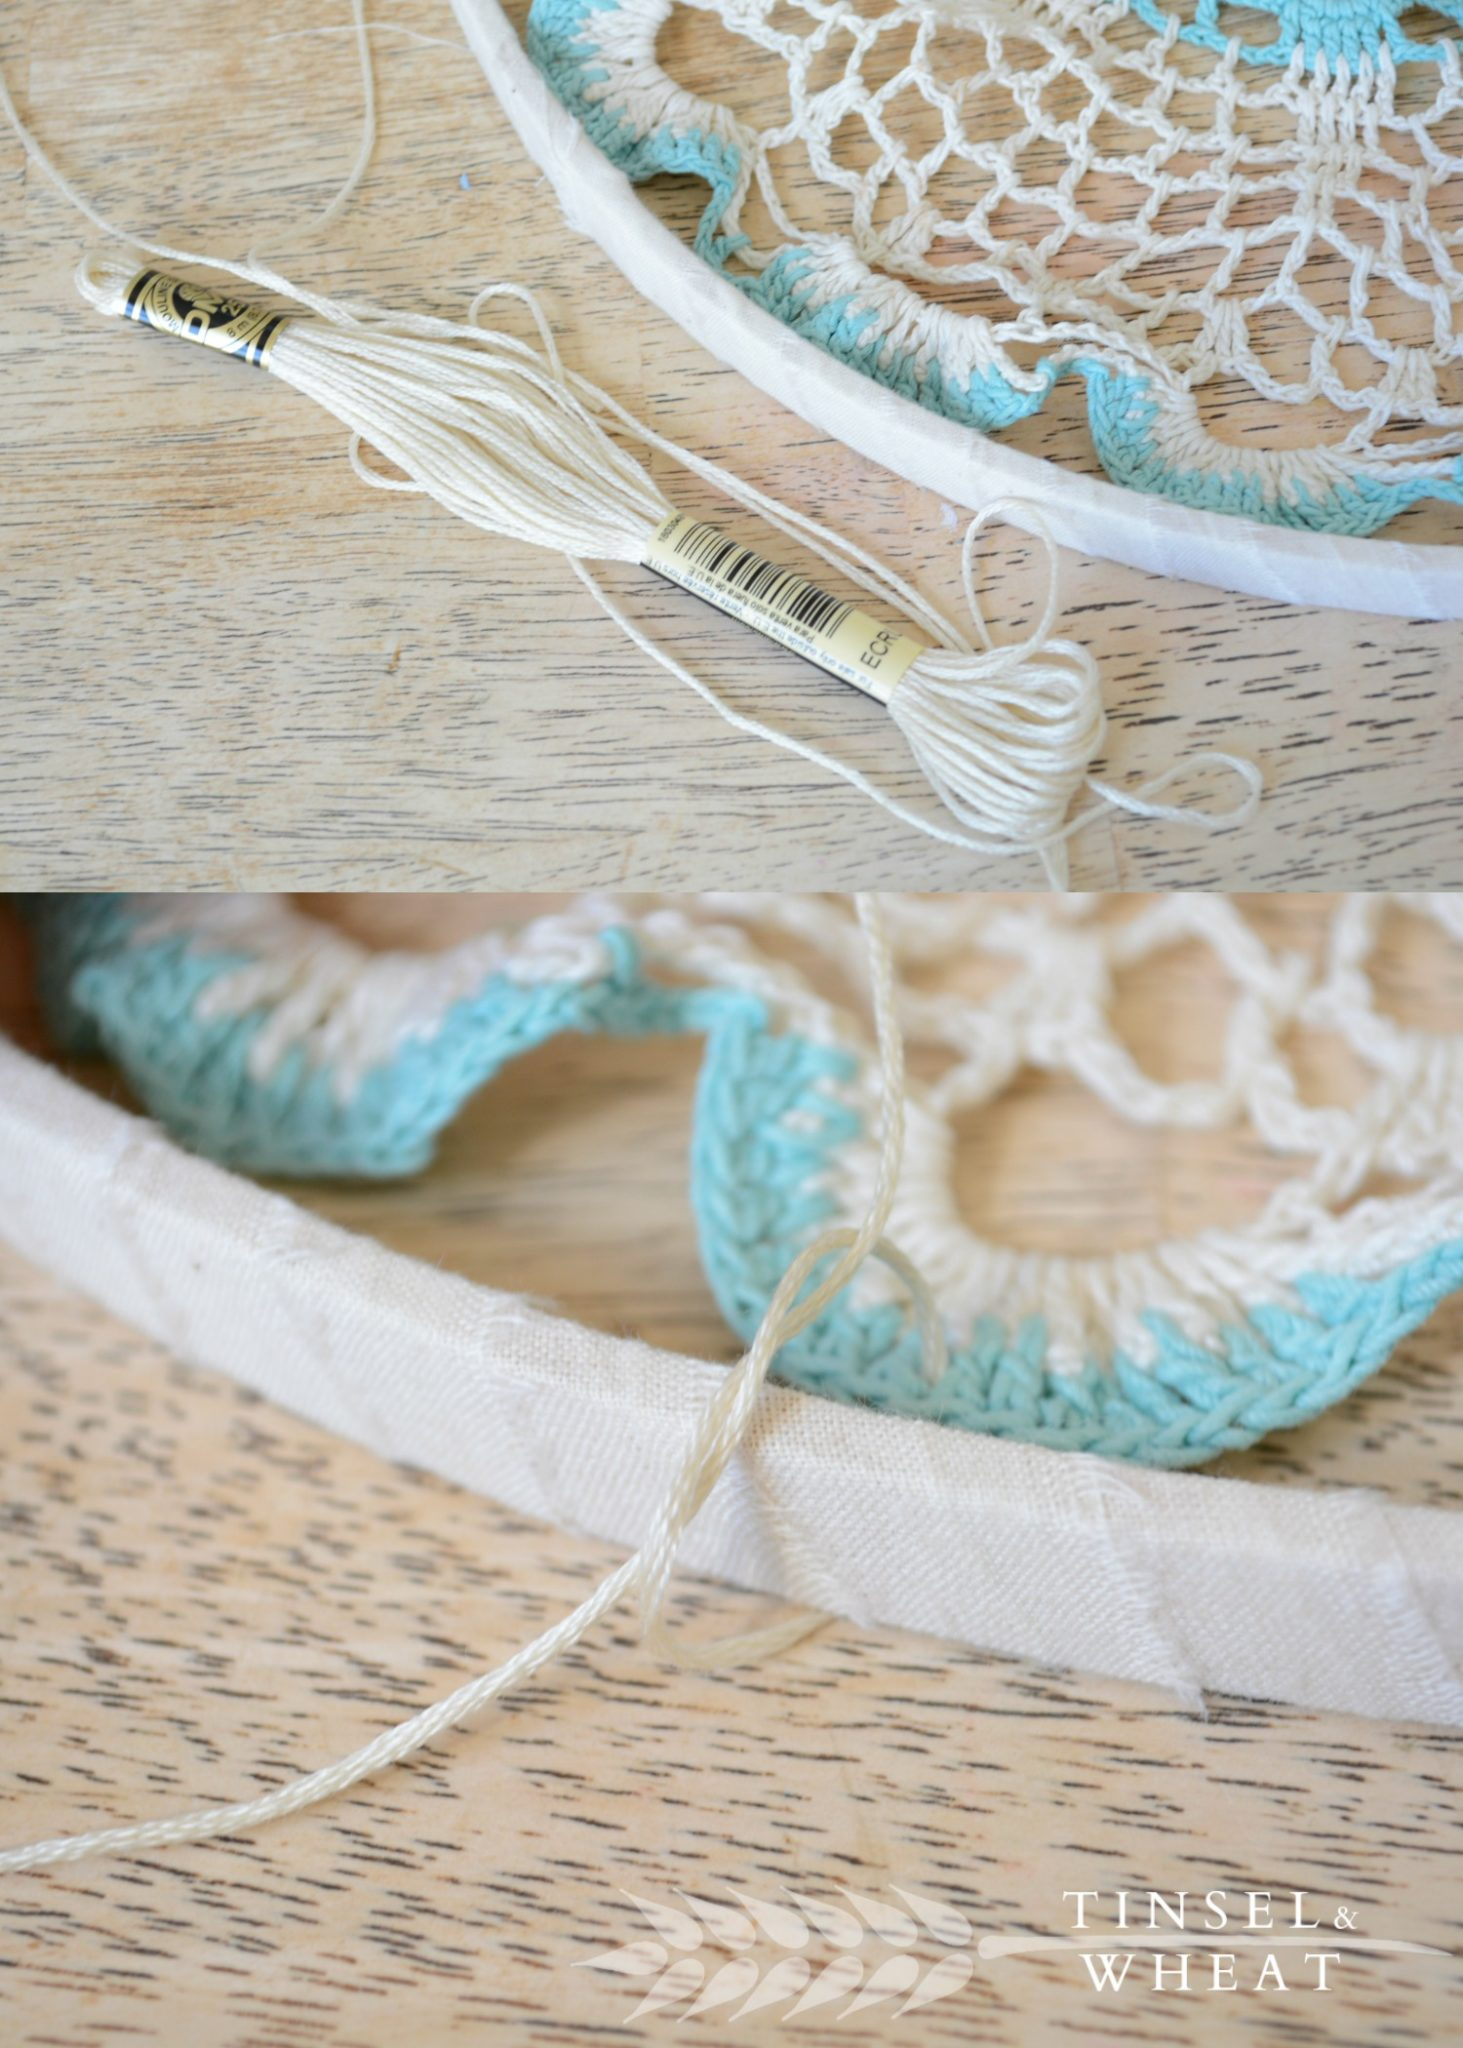 Doily Dream Catchers by Tinsel & Wheat 101